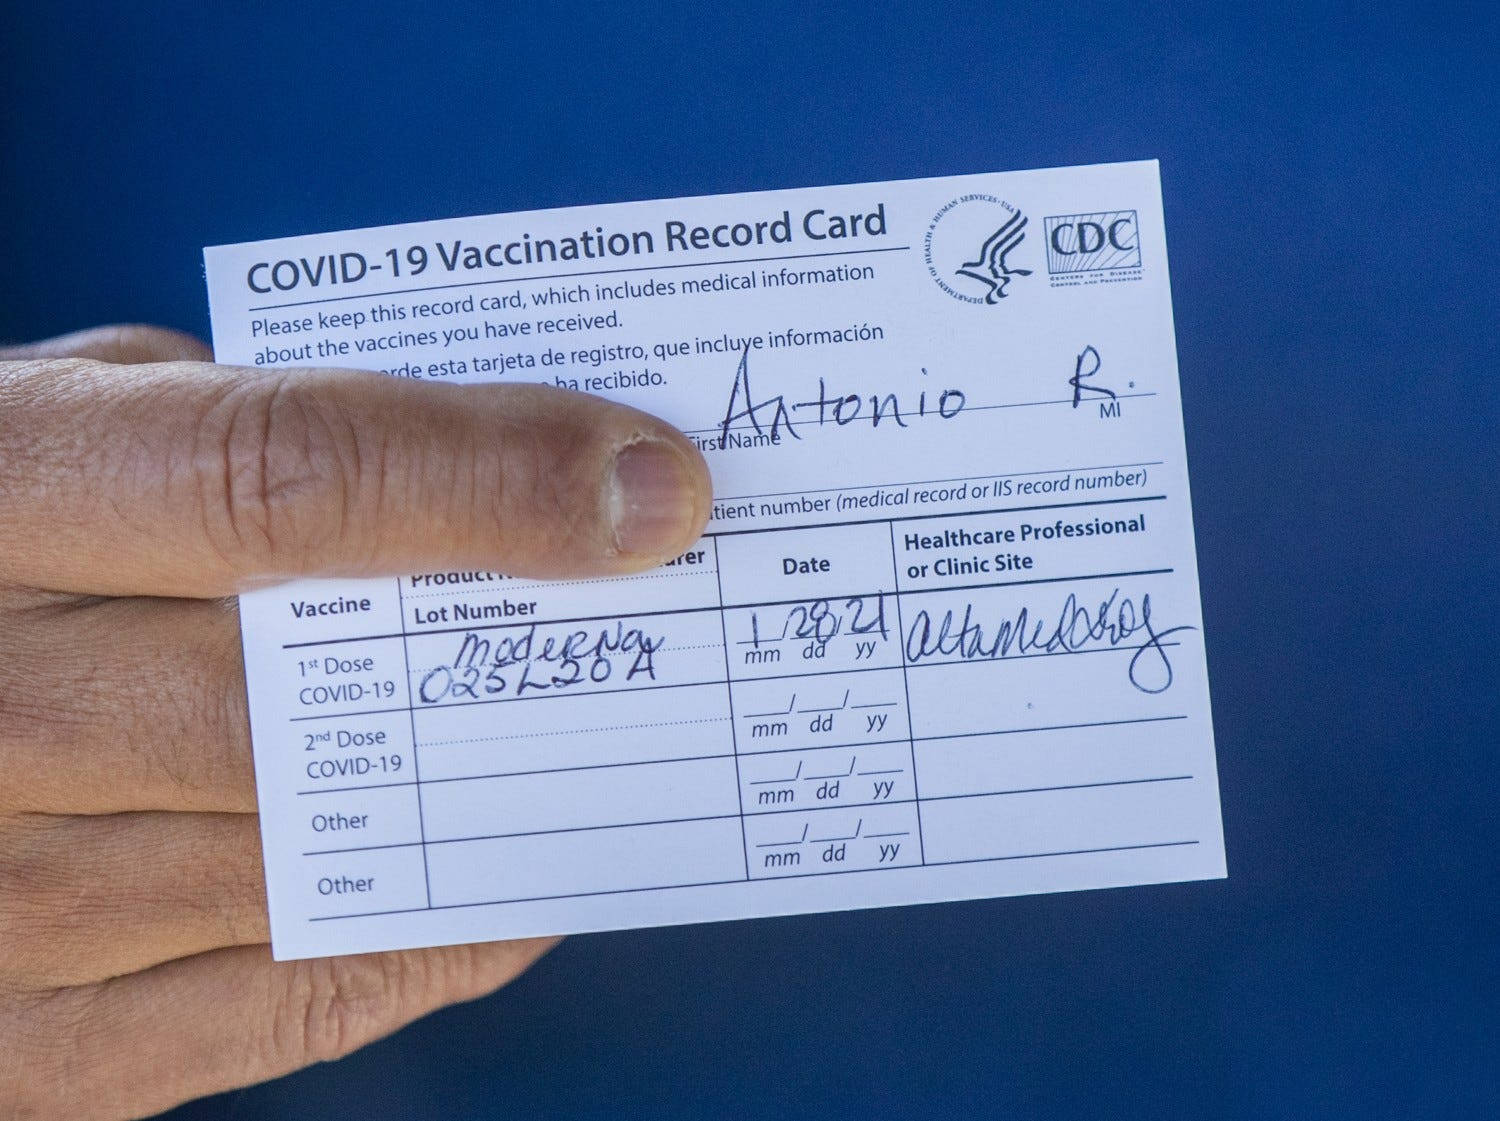 Vaccine passports: How to prove you've gotten your COVID-19 shots for travel and avoid scams